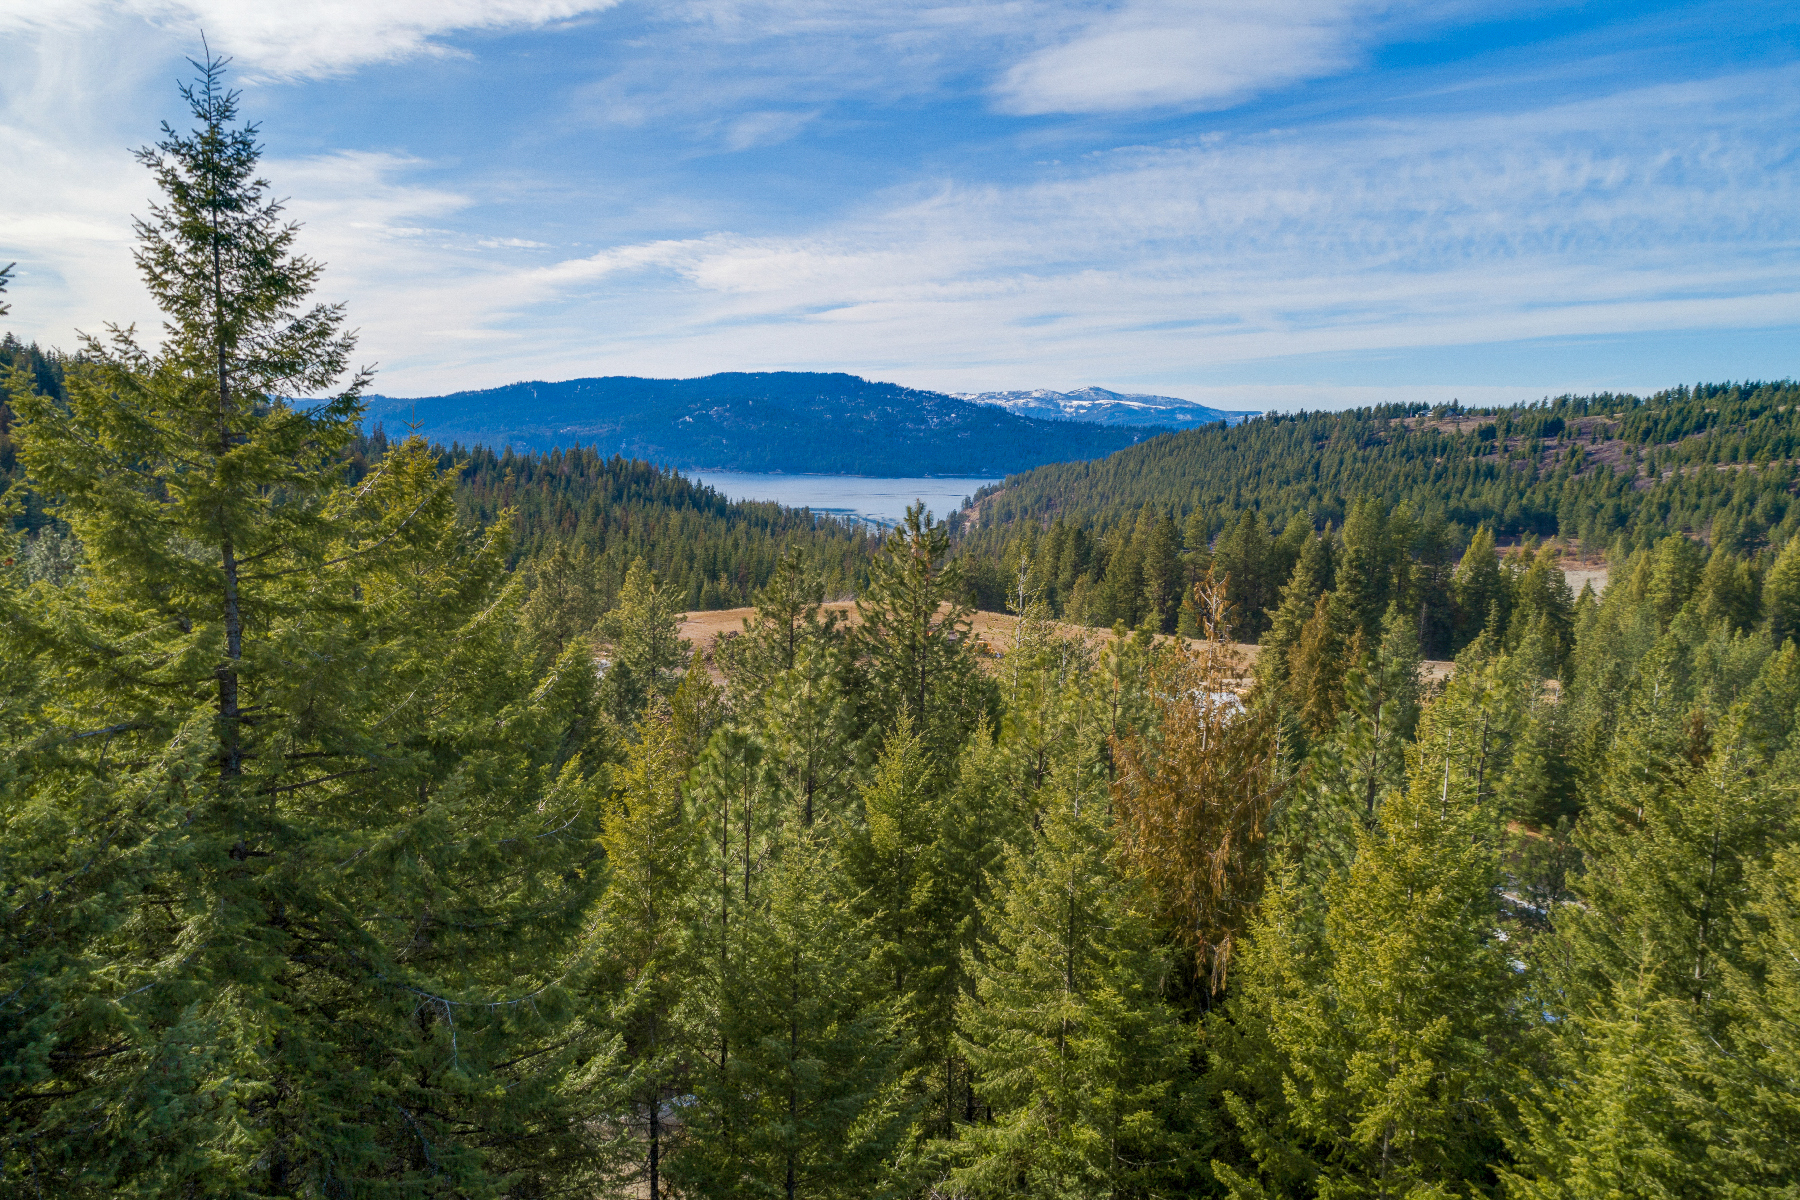 Land for Sale at 34 Treed Acres with Lake Views 0 Carlin Bay Rd. Harrison, Idaho 83833 United States